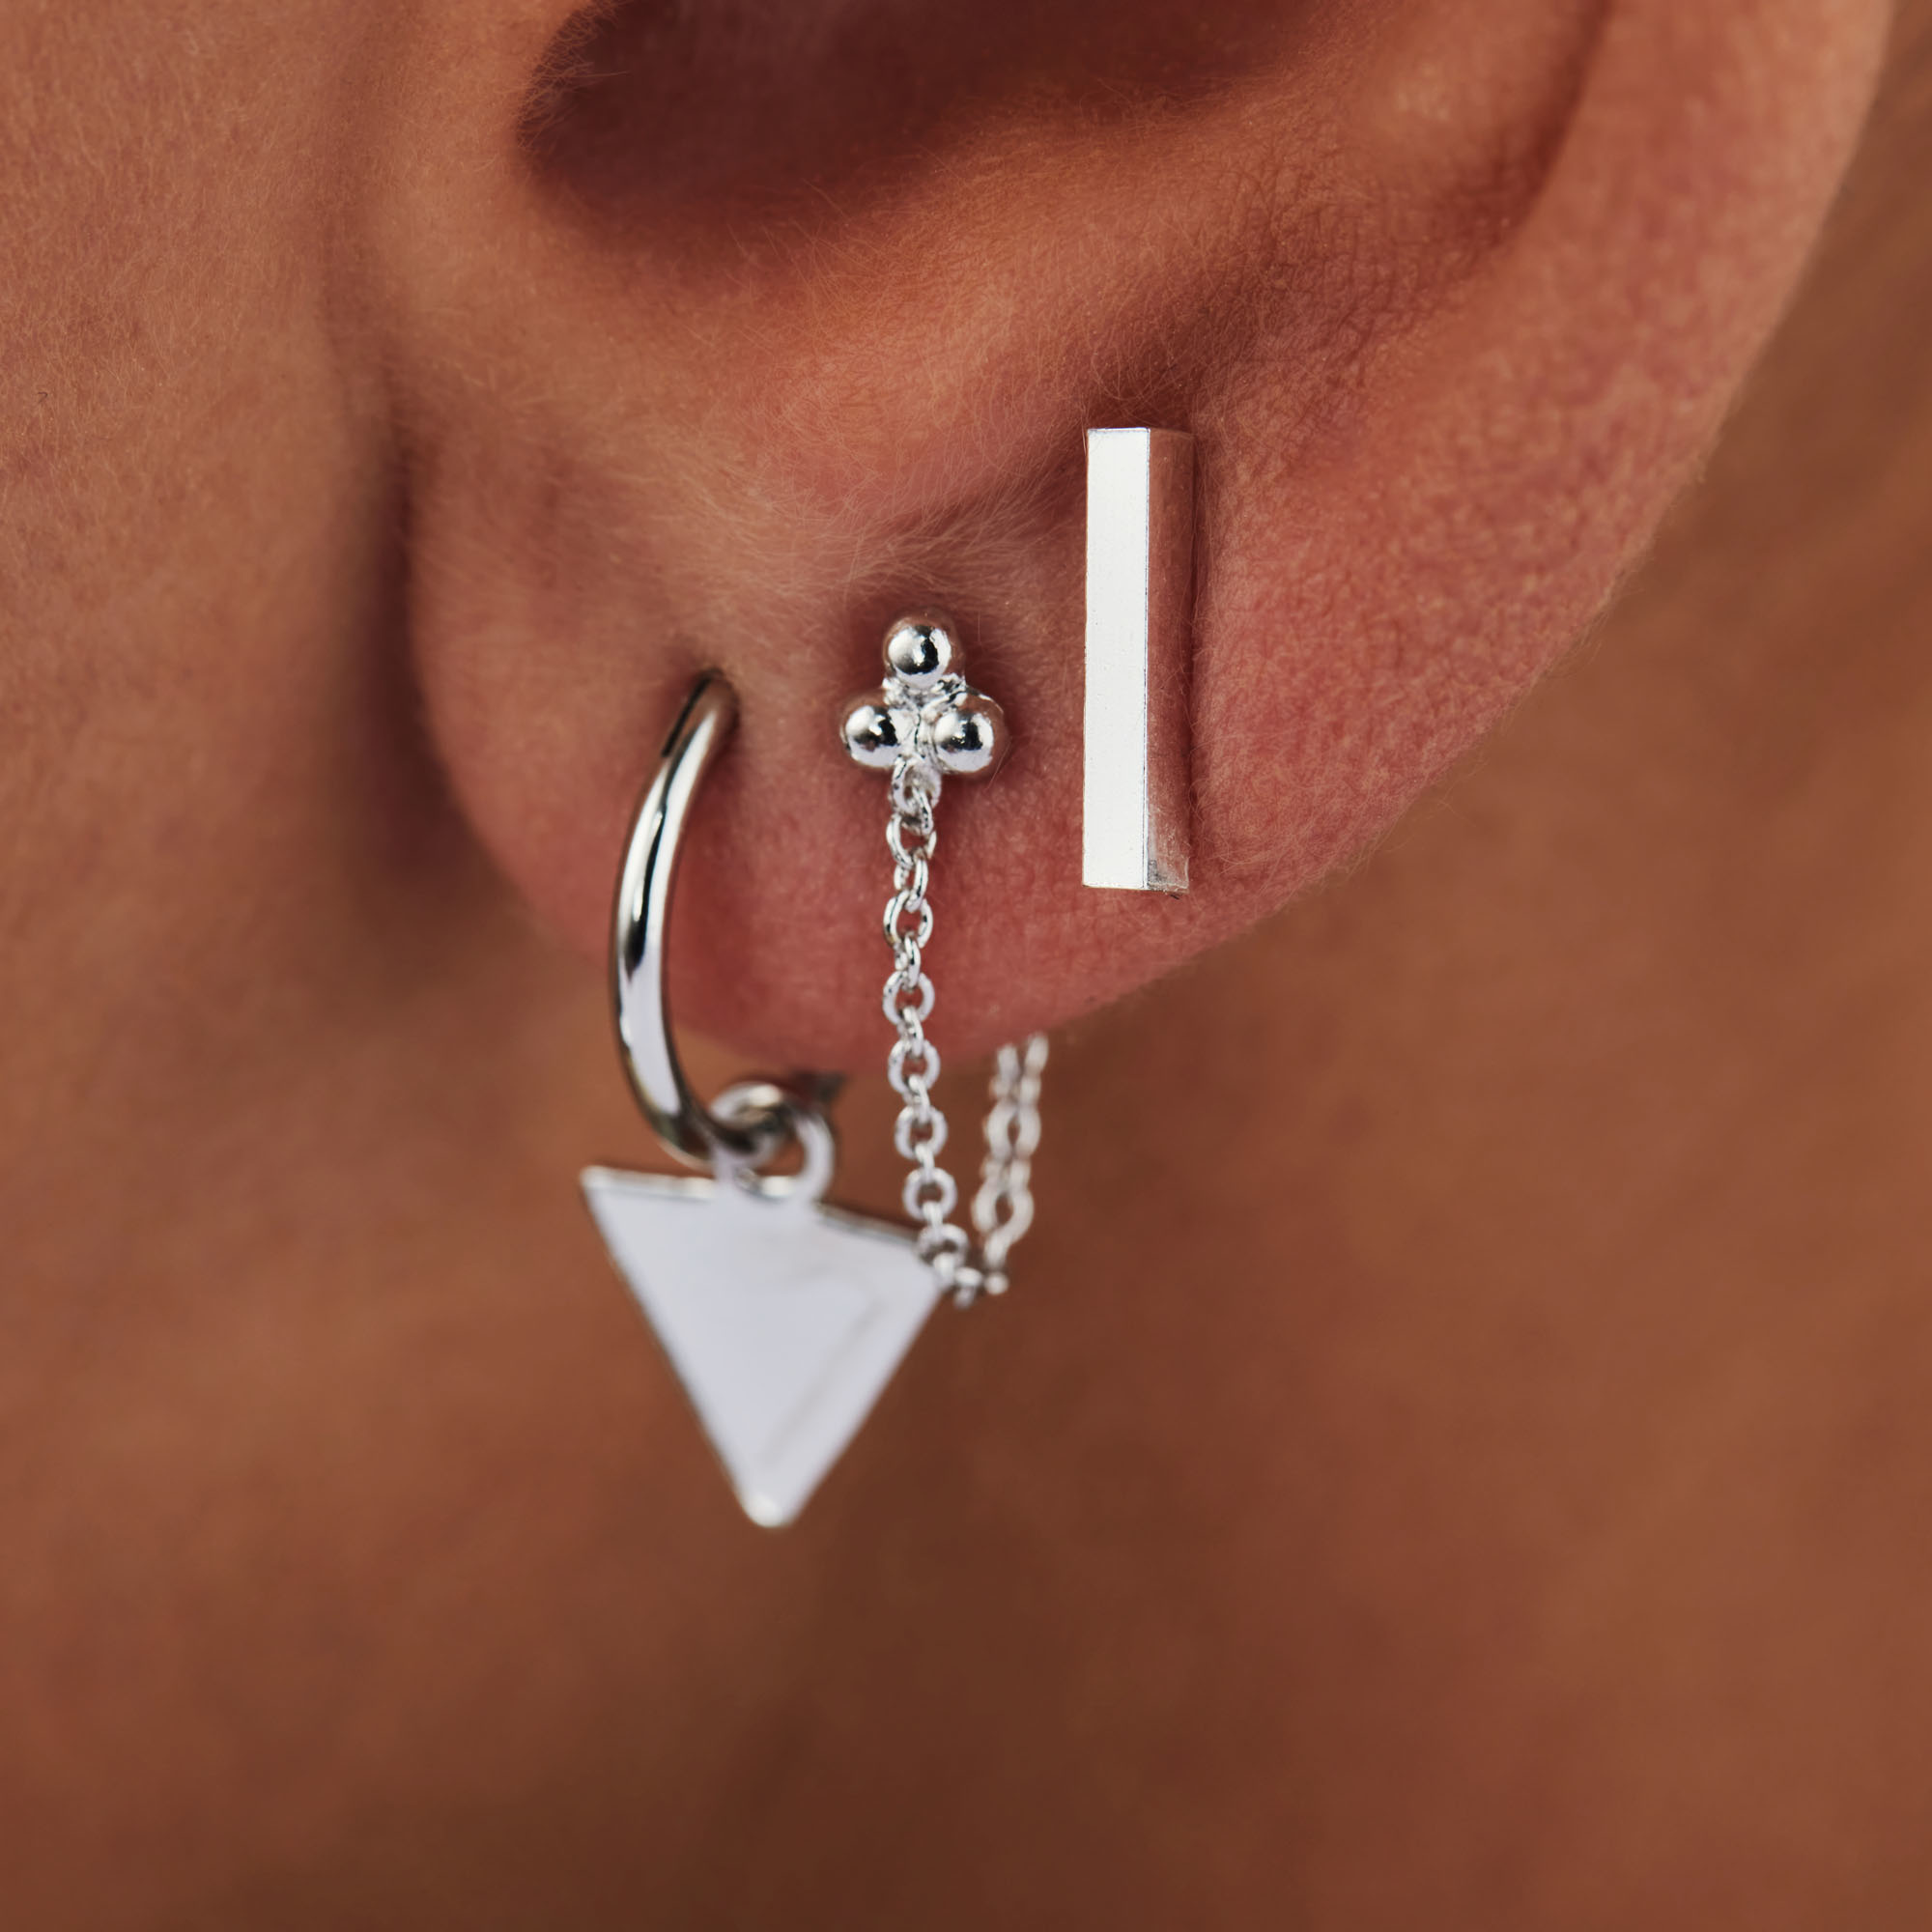 Selected Jewels Julie Charlotte 925 sterling silver ear studs with bar